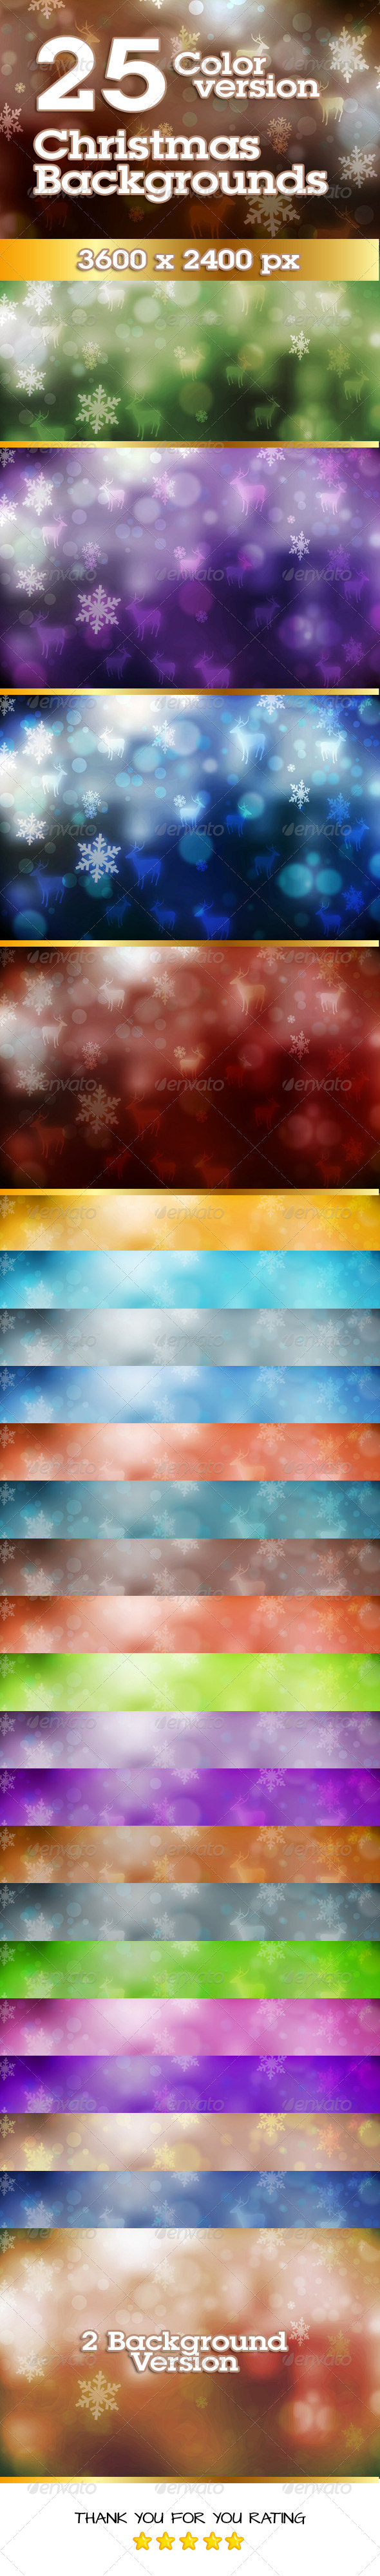 GraphicRiver Christmas Background in 25 Colors variations 6263969